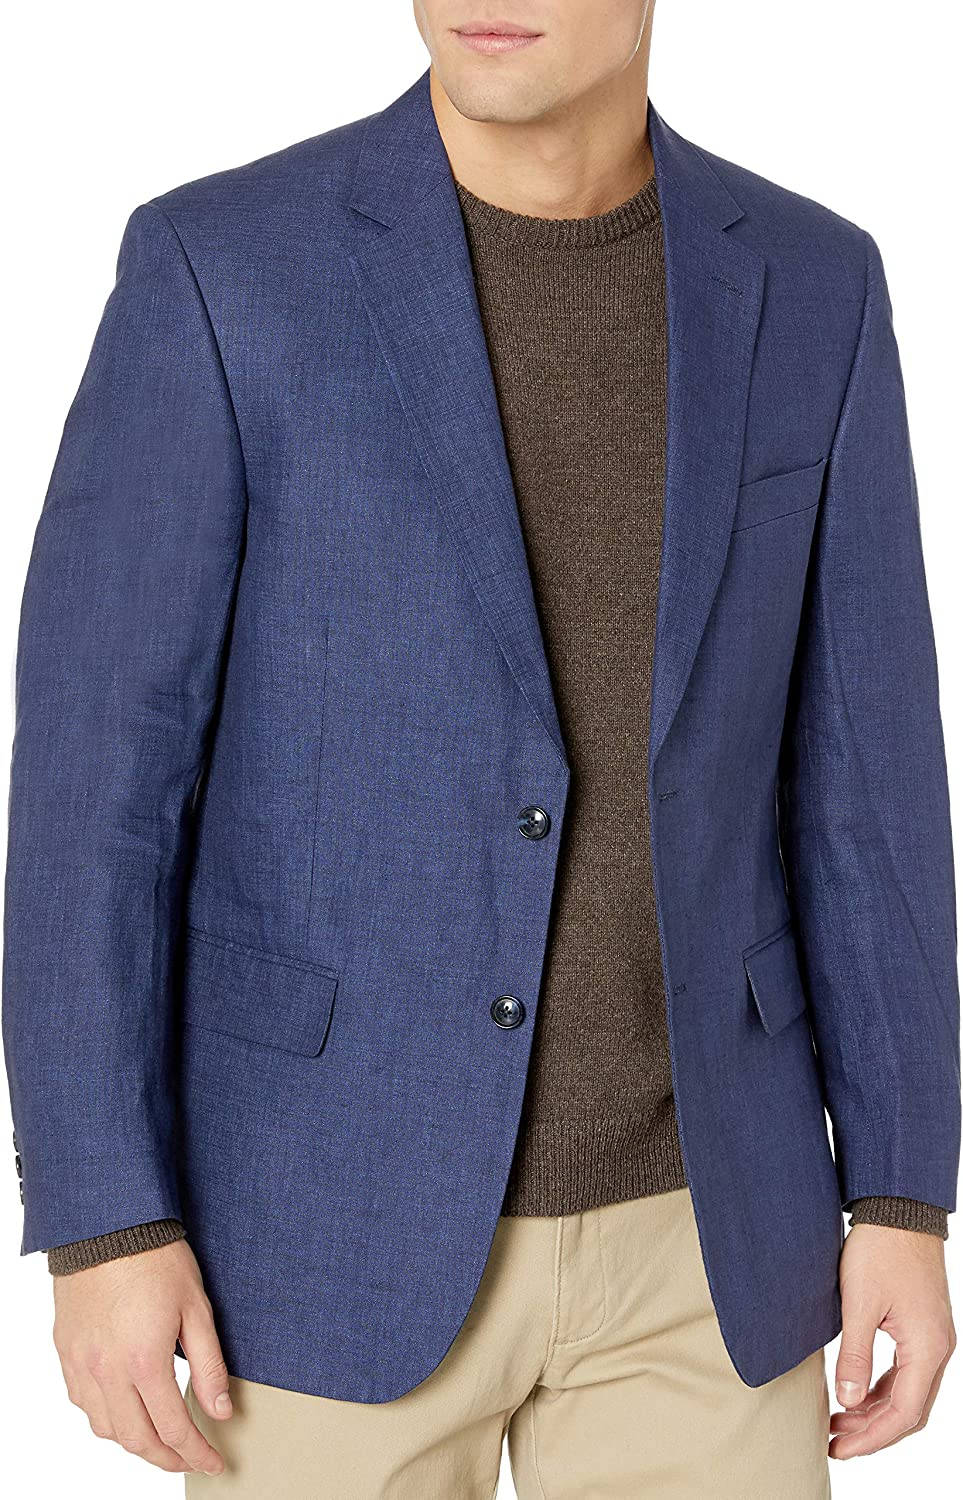 Palm Beach Men's Bradley Linen Sportcoat